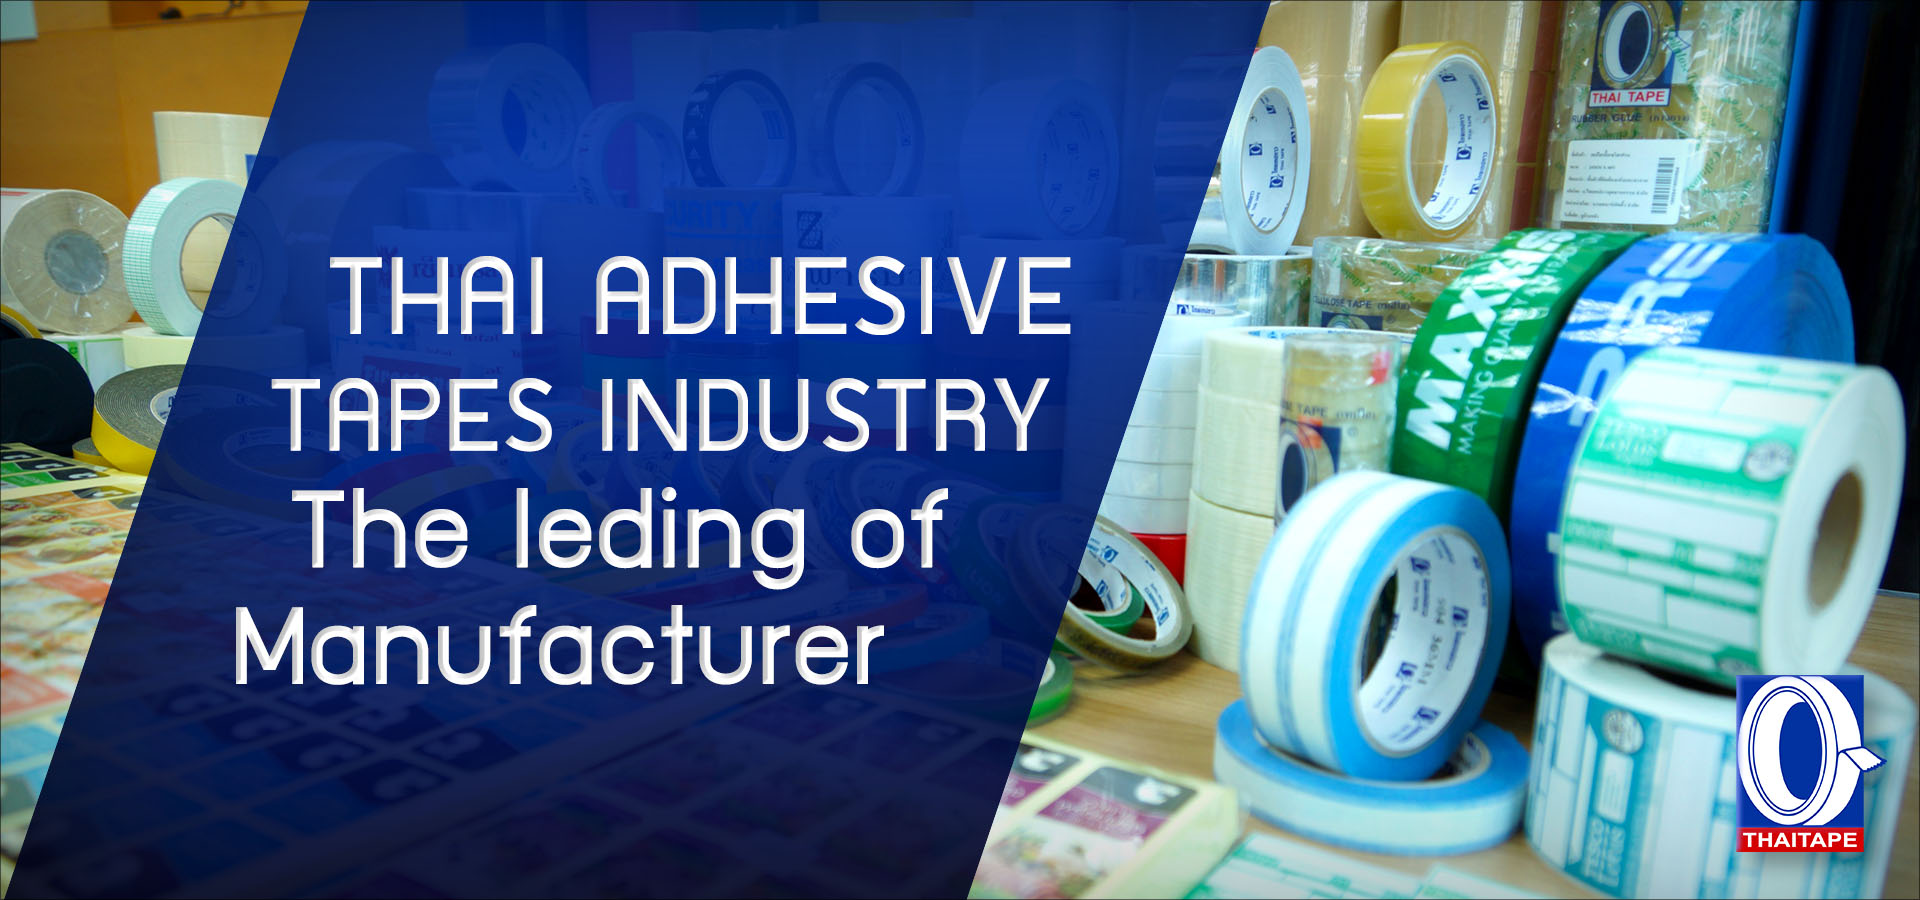 THAI ADHESIVE TAPES INDUSTRY